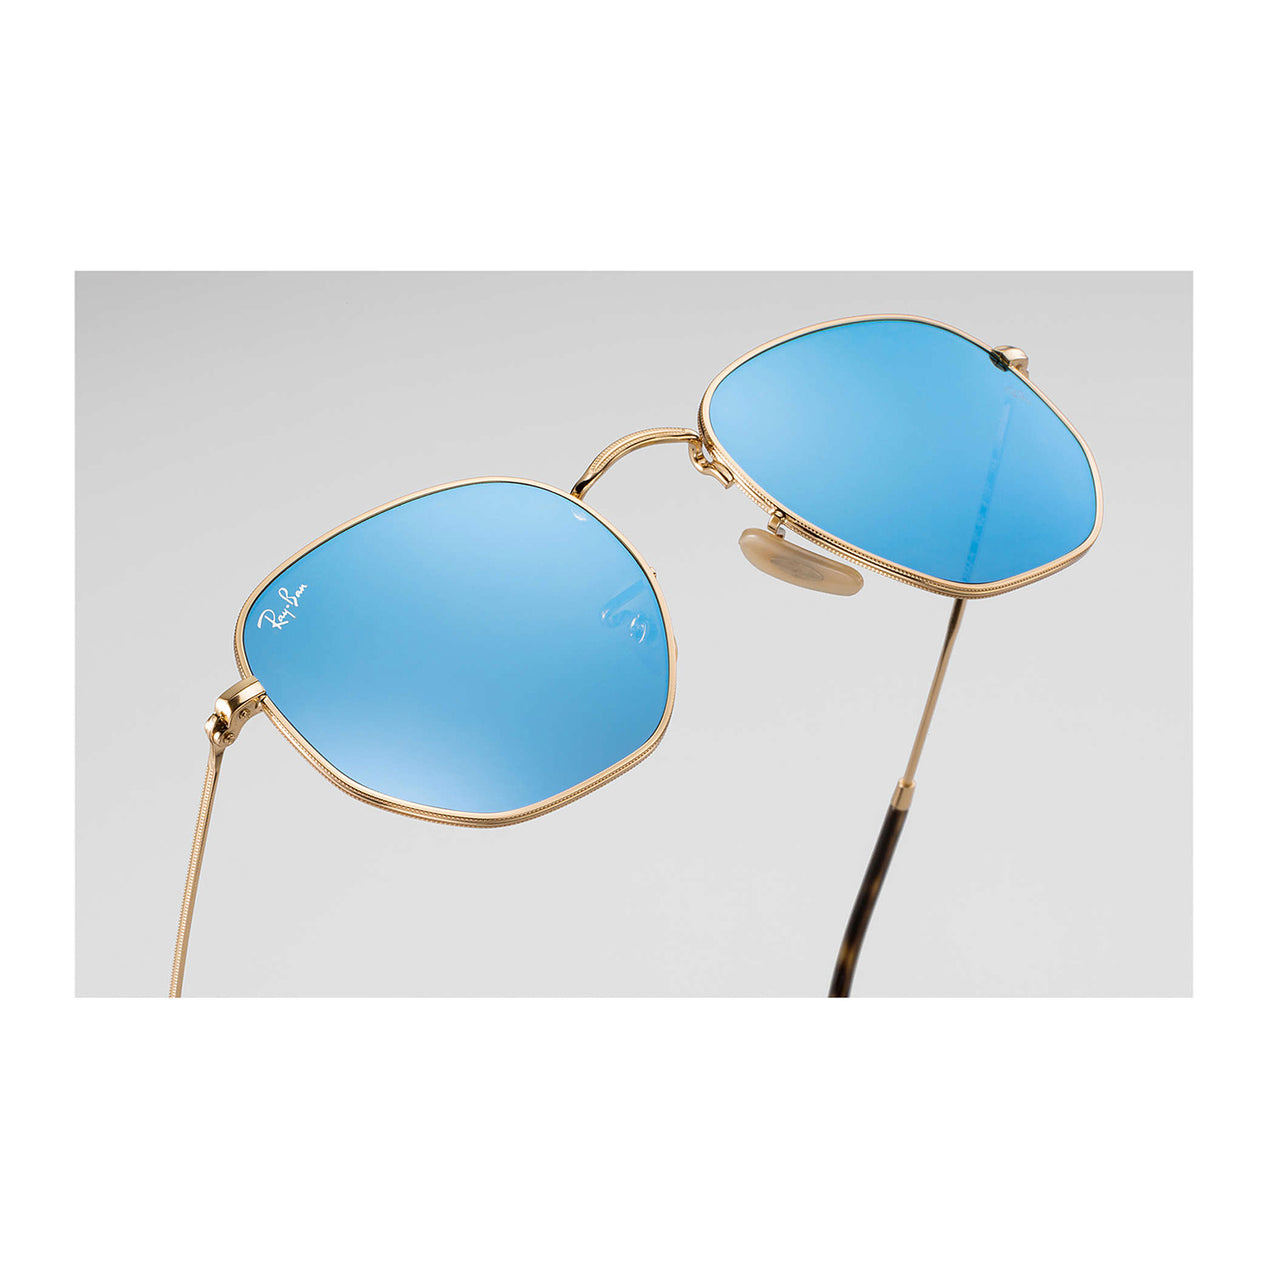 b522adff3d56f ... Hexagonal Flat Lenses - Gold Frame - Light Blue Gradient Lens thumb